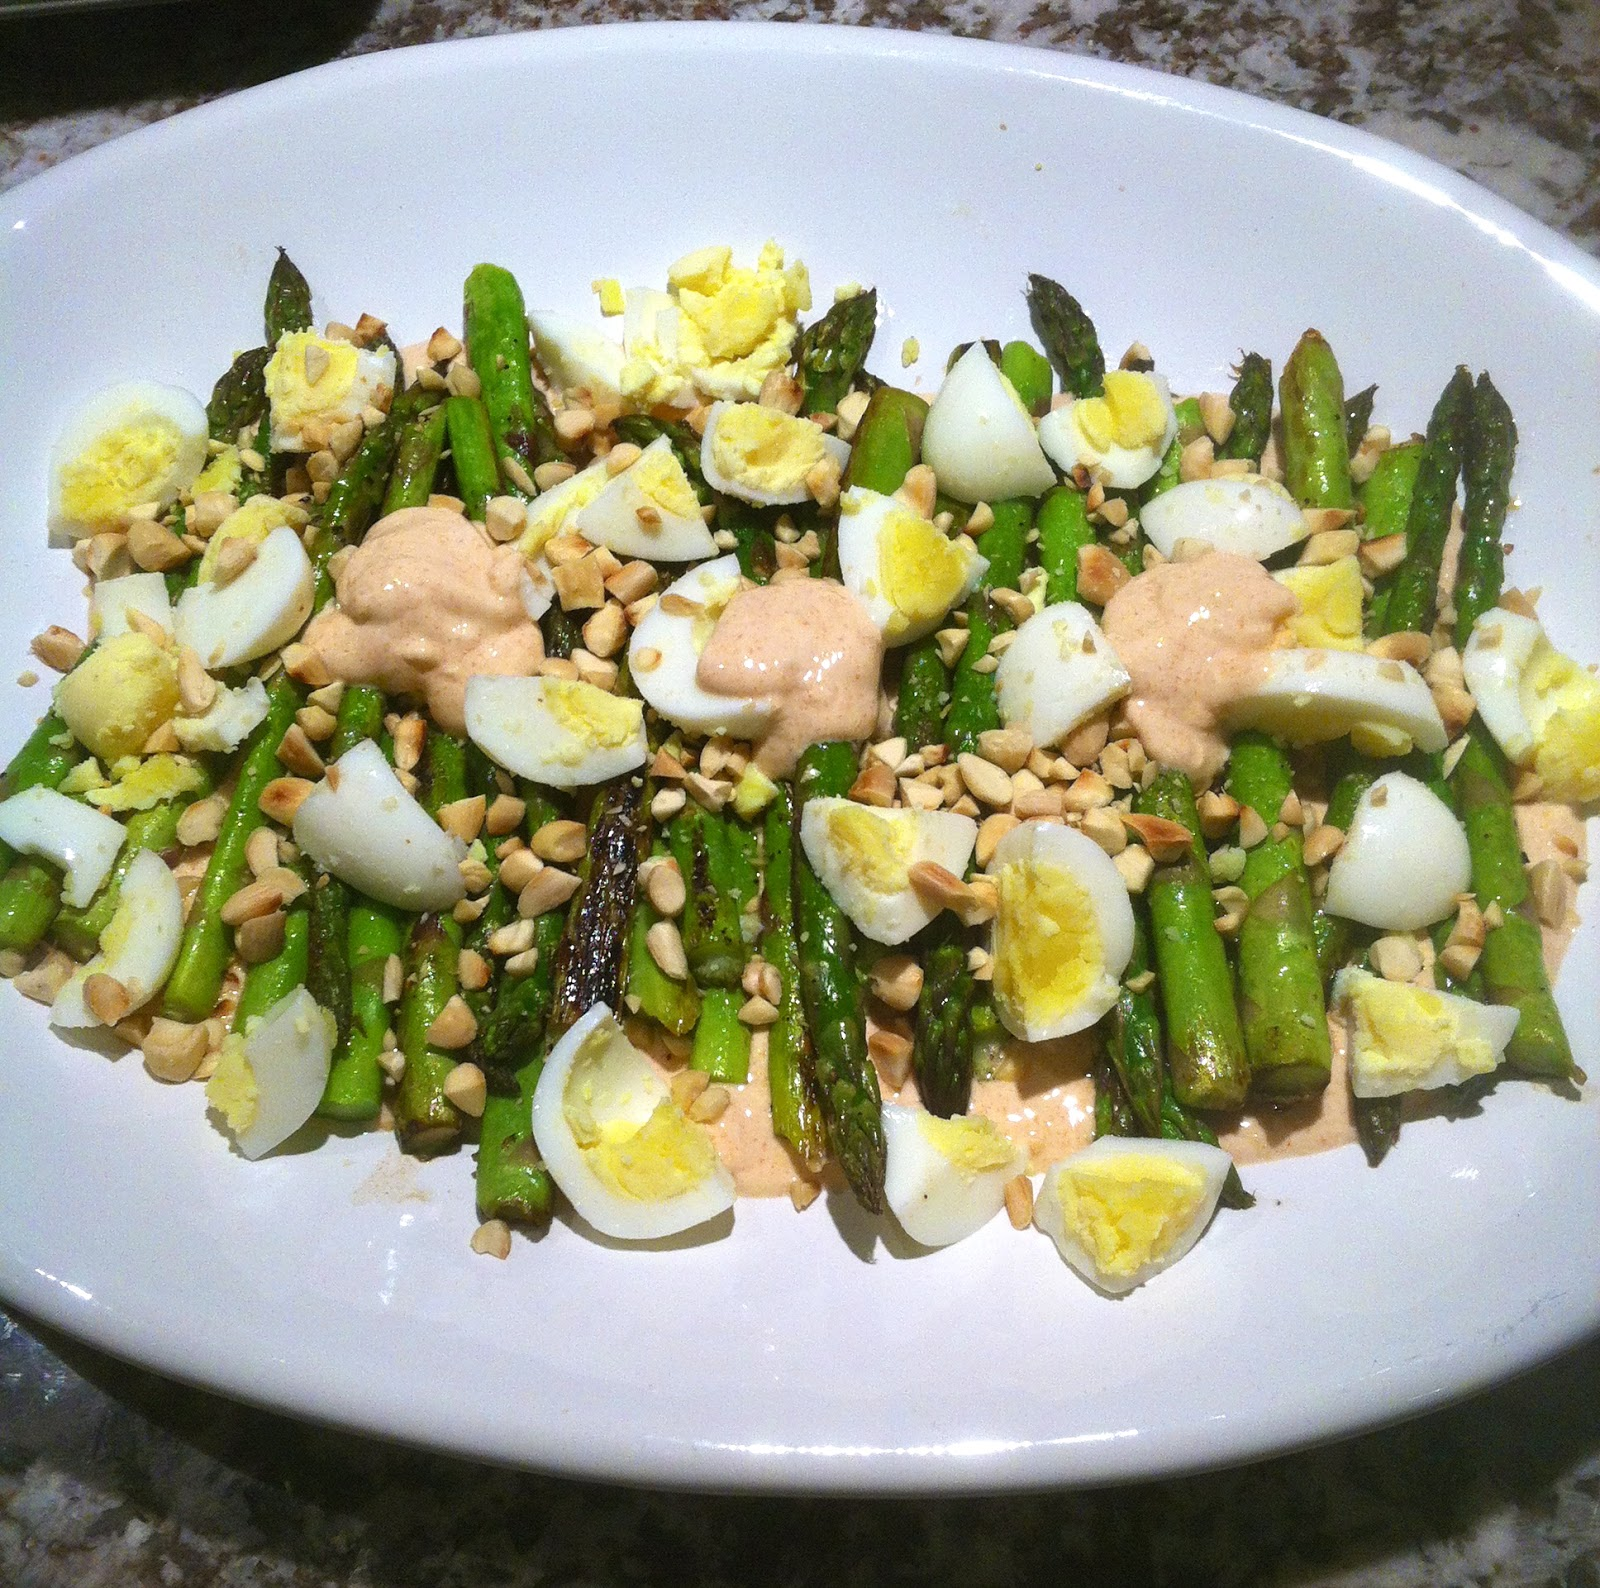 ... Asparagus with Smoky Lemon Yogurt, Chopped Eggs, and Toasted Almonds